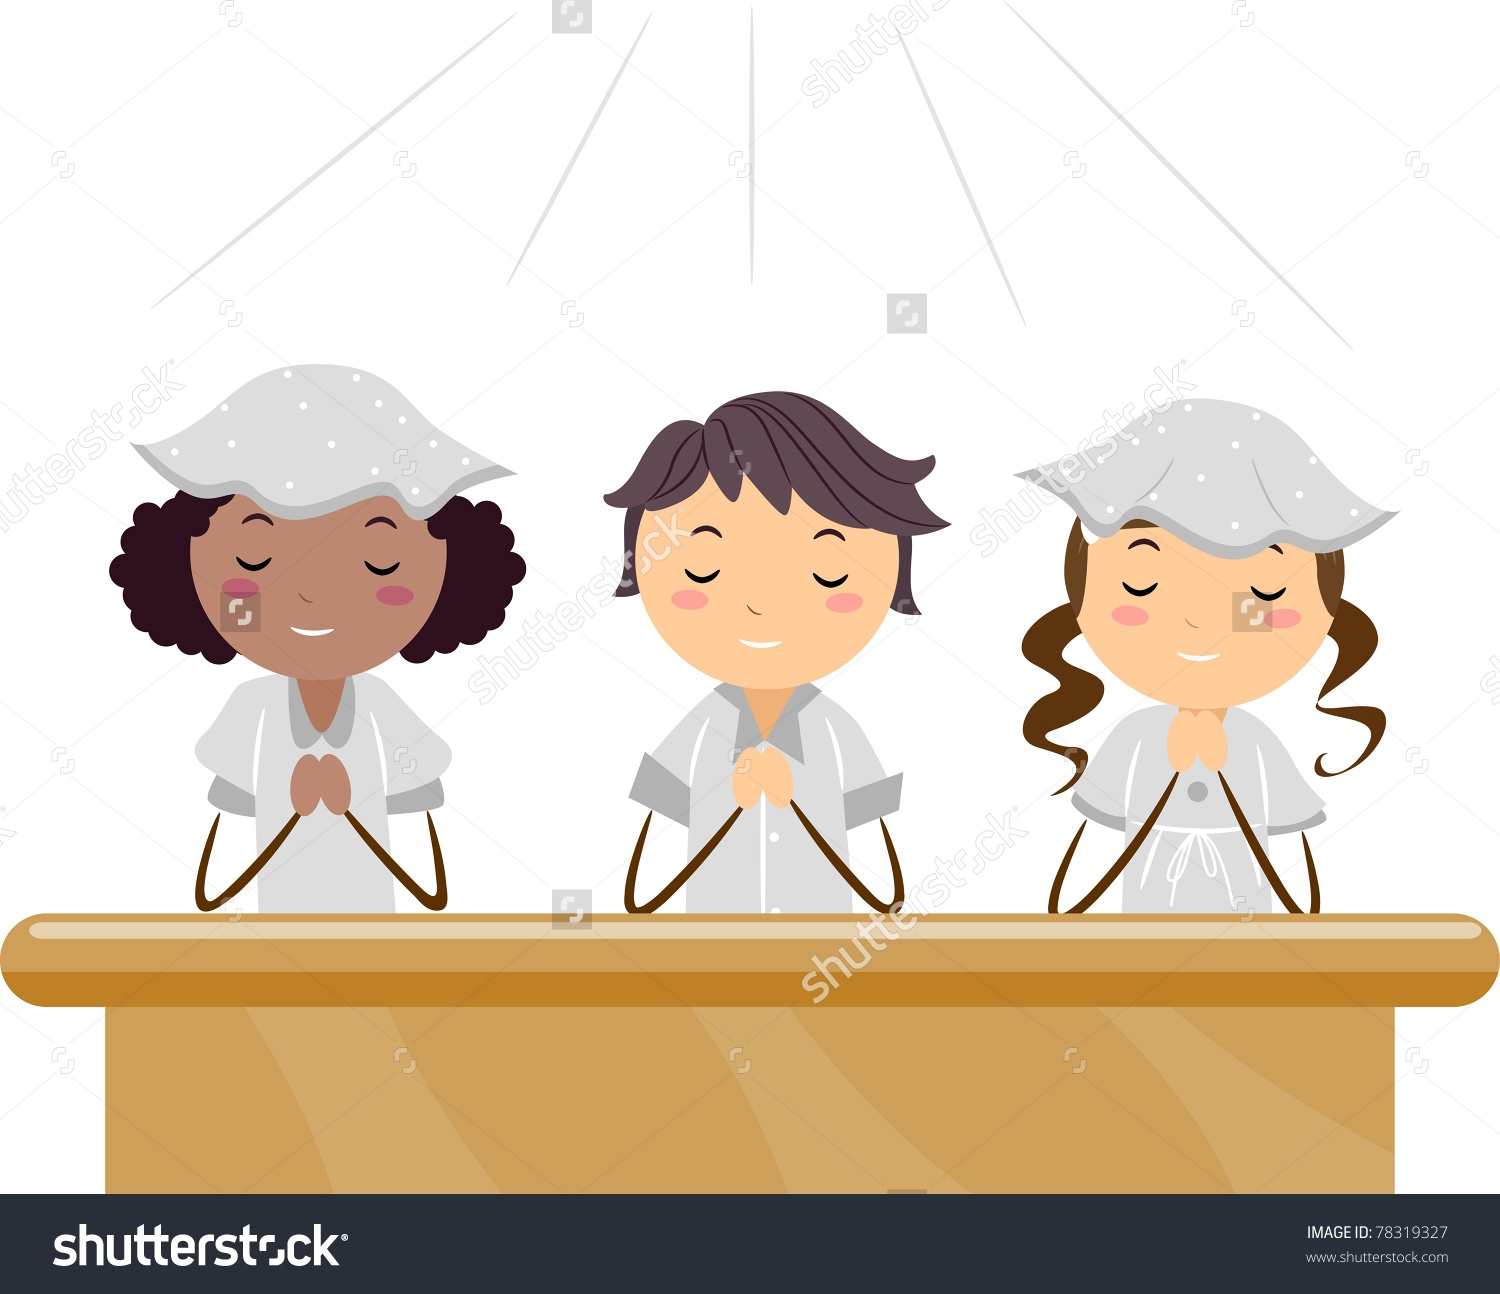 Children praying in church clipart 5 » Clipart Station.